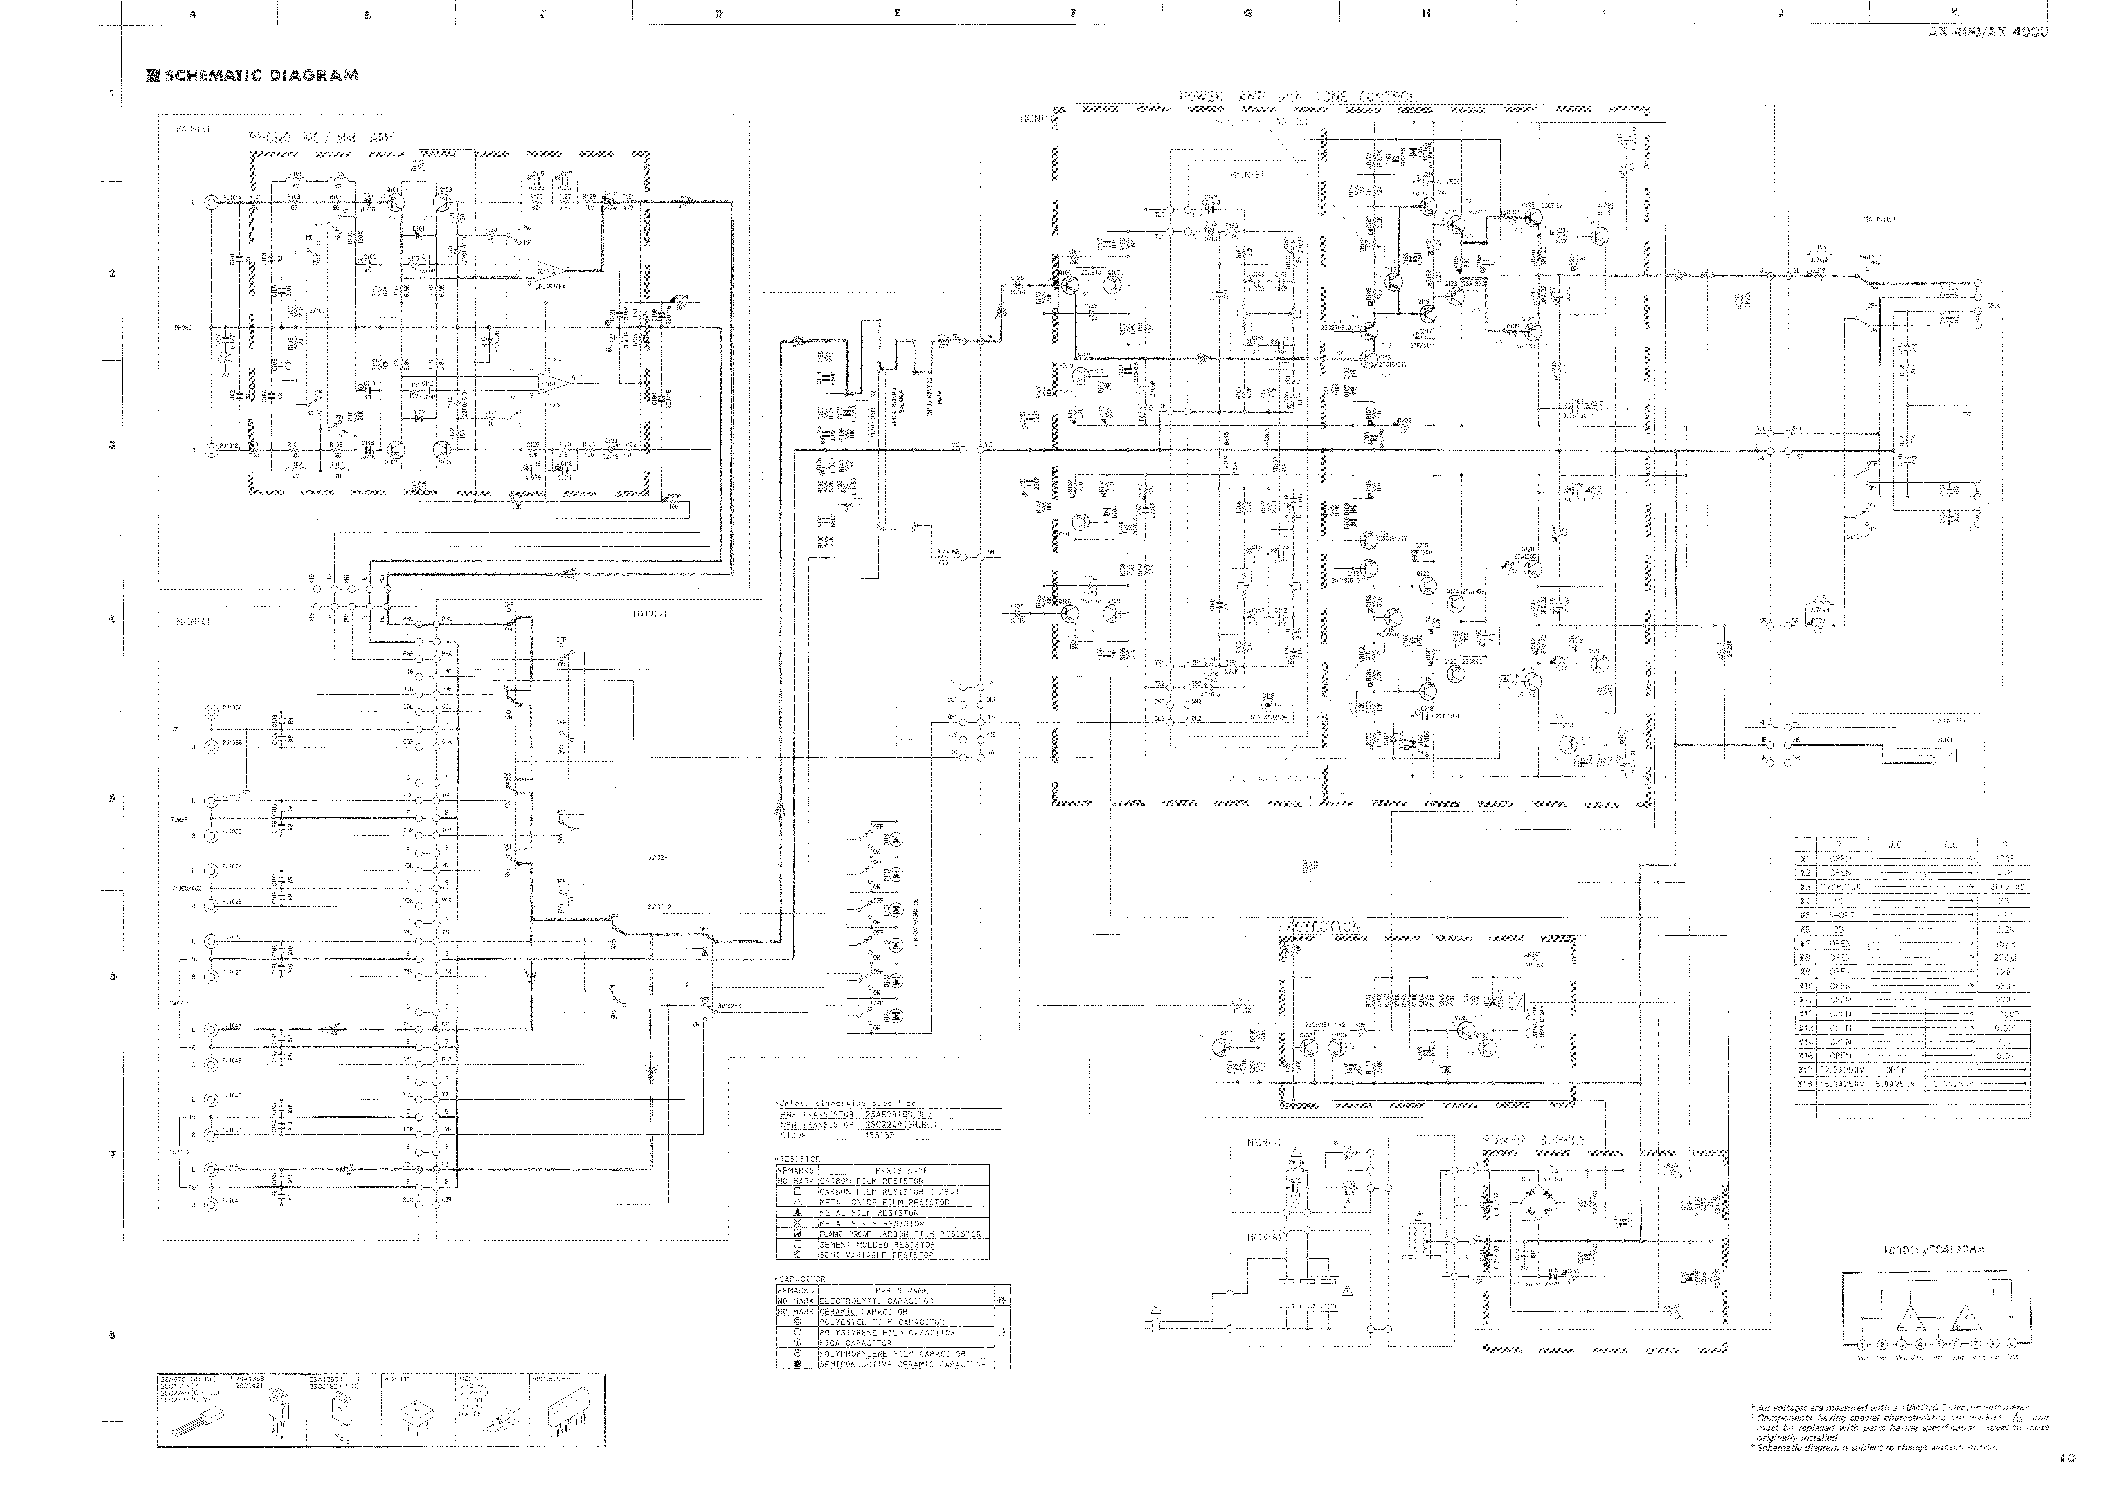 YAMAHA AX-400 SCH Service Manual download, schematics, eeprom, repair info for electronics experts